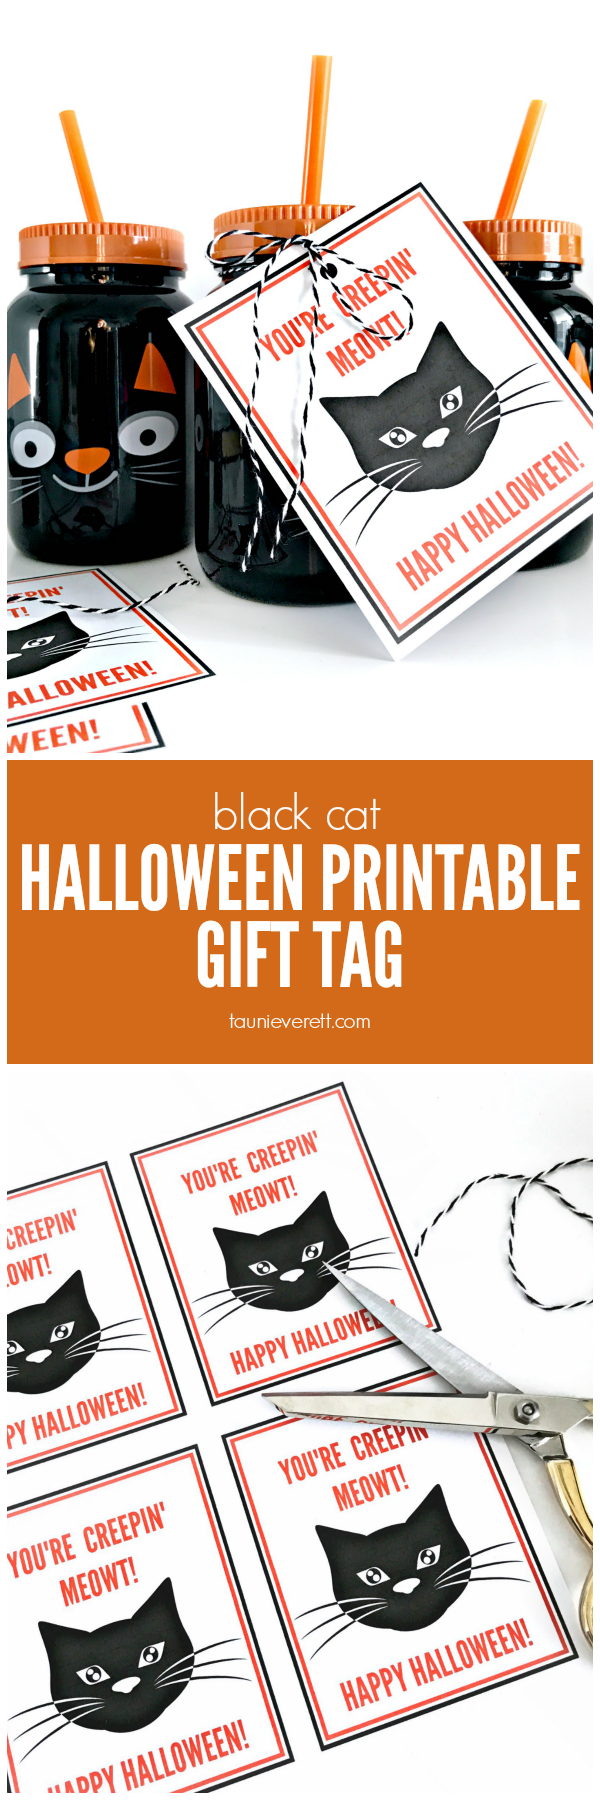 Black cat printable halloween gift tag © tauni everett 2018 hero